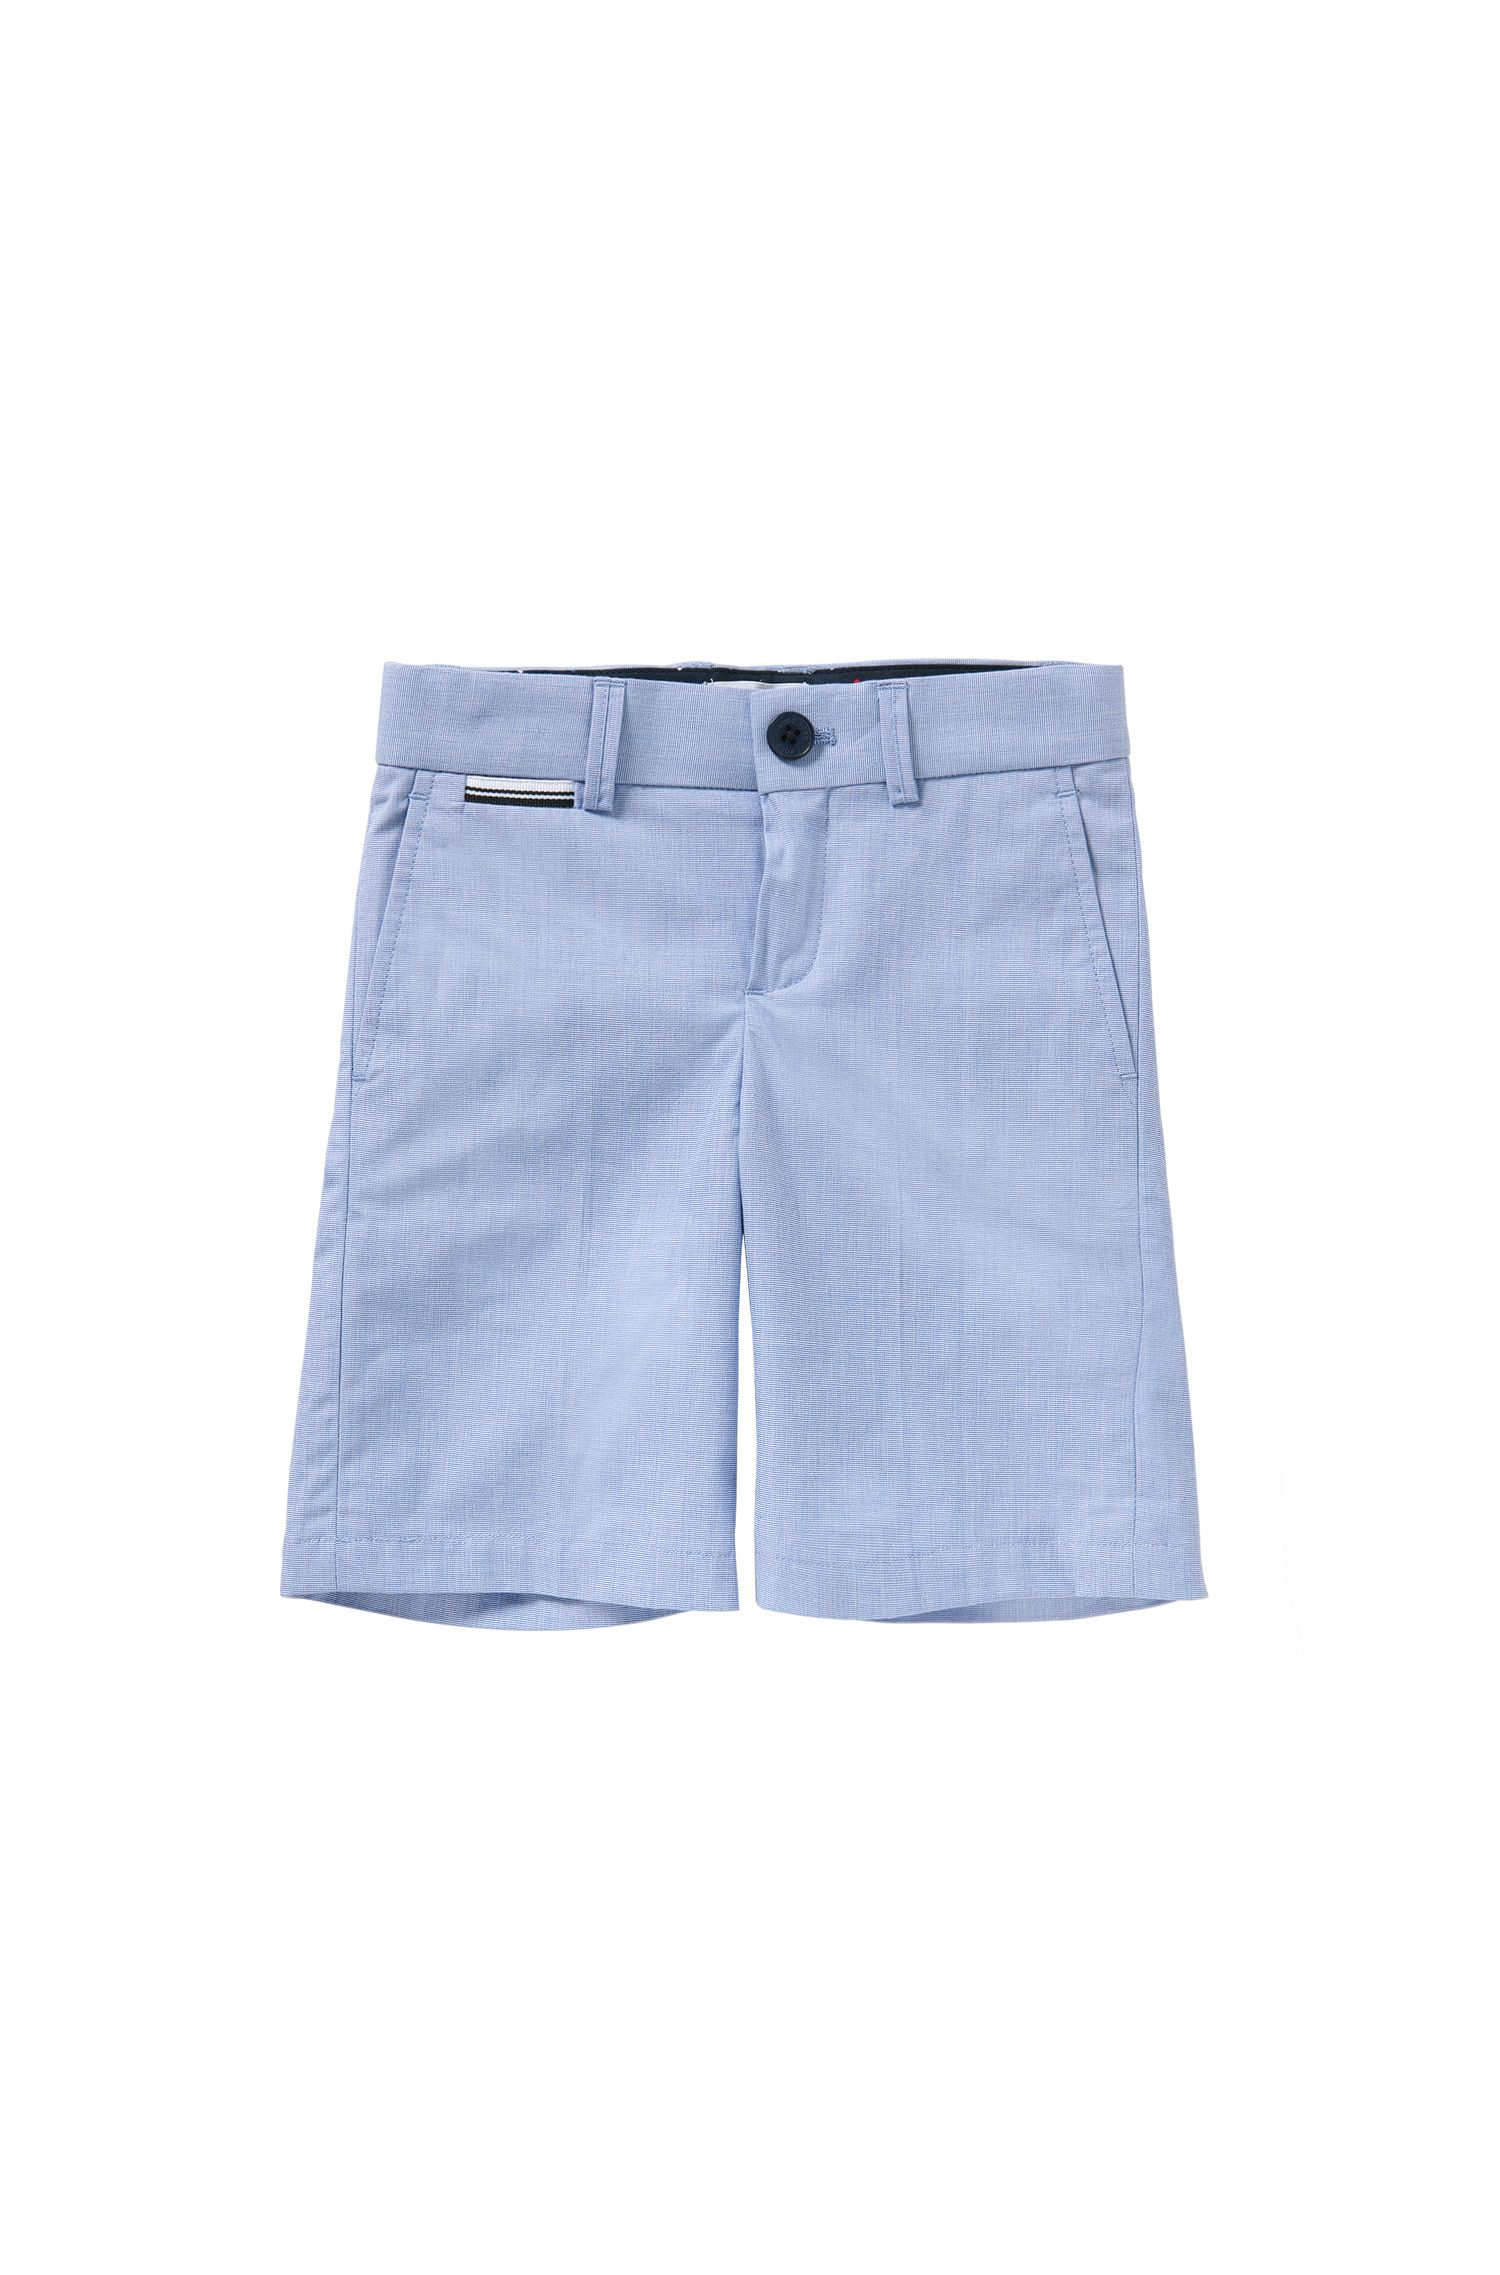 Kids' shorts in cotton with striped detail: 'J24411'